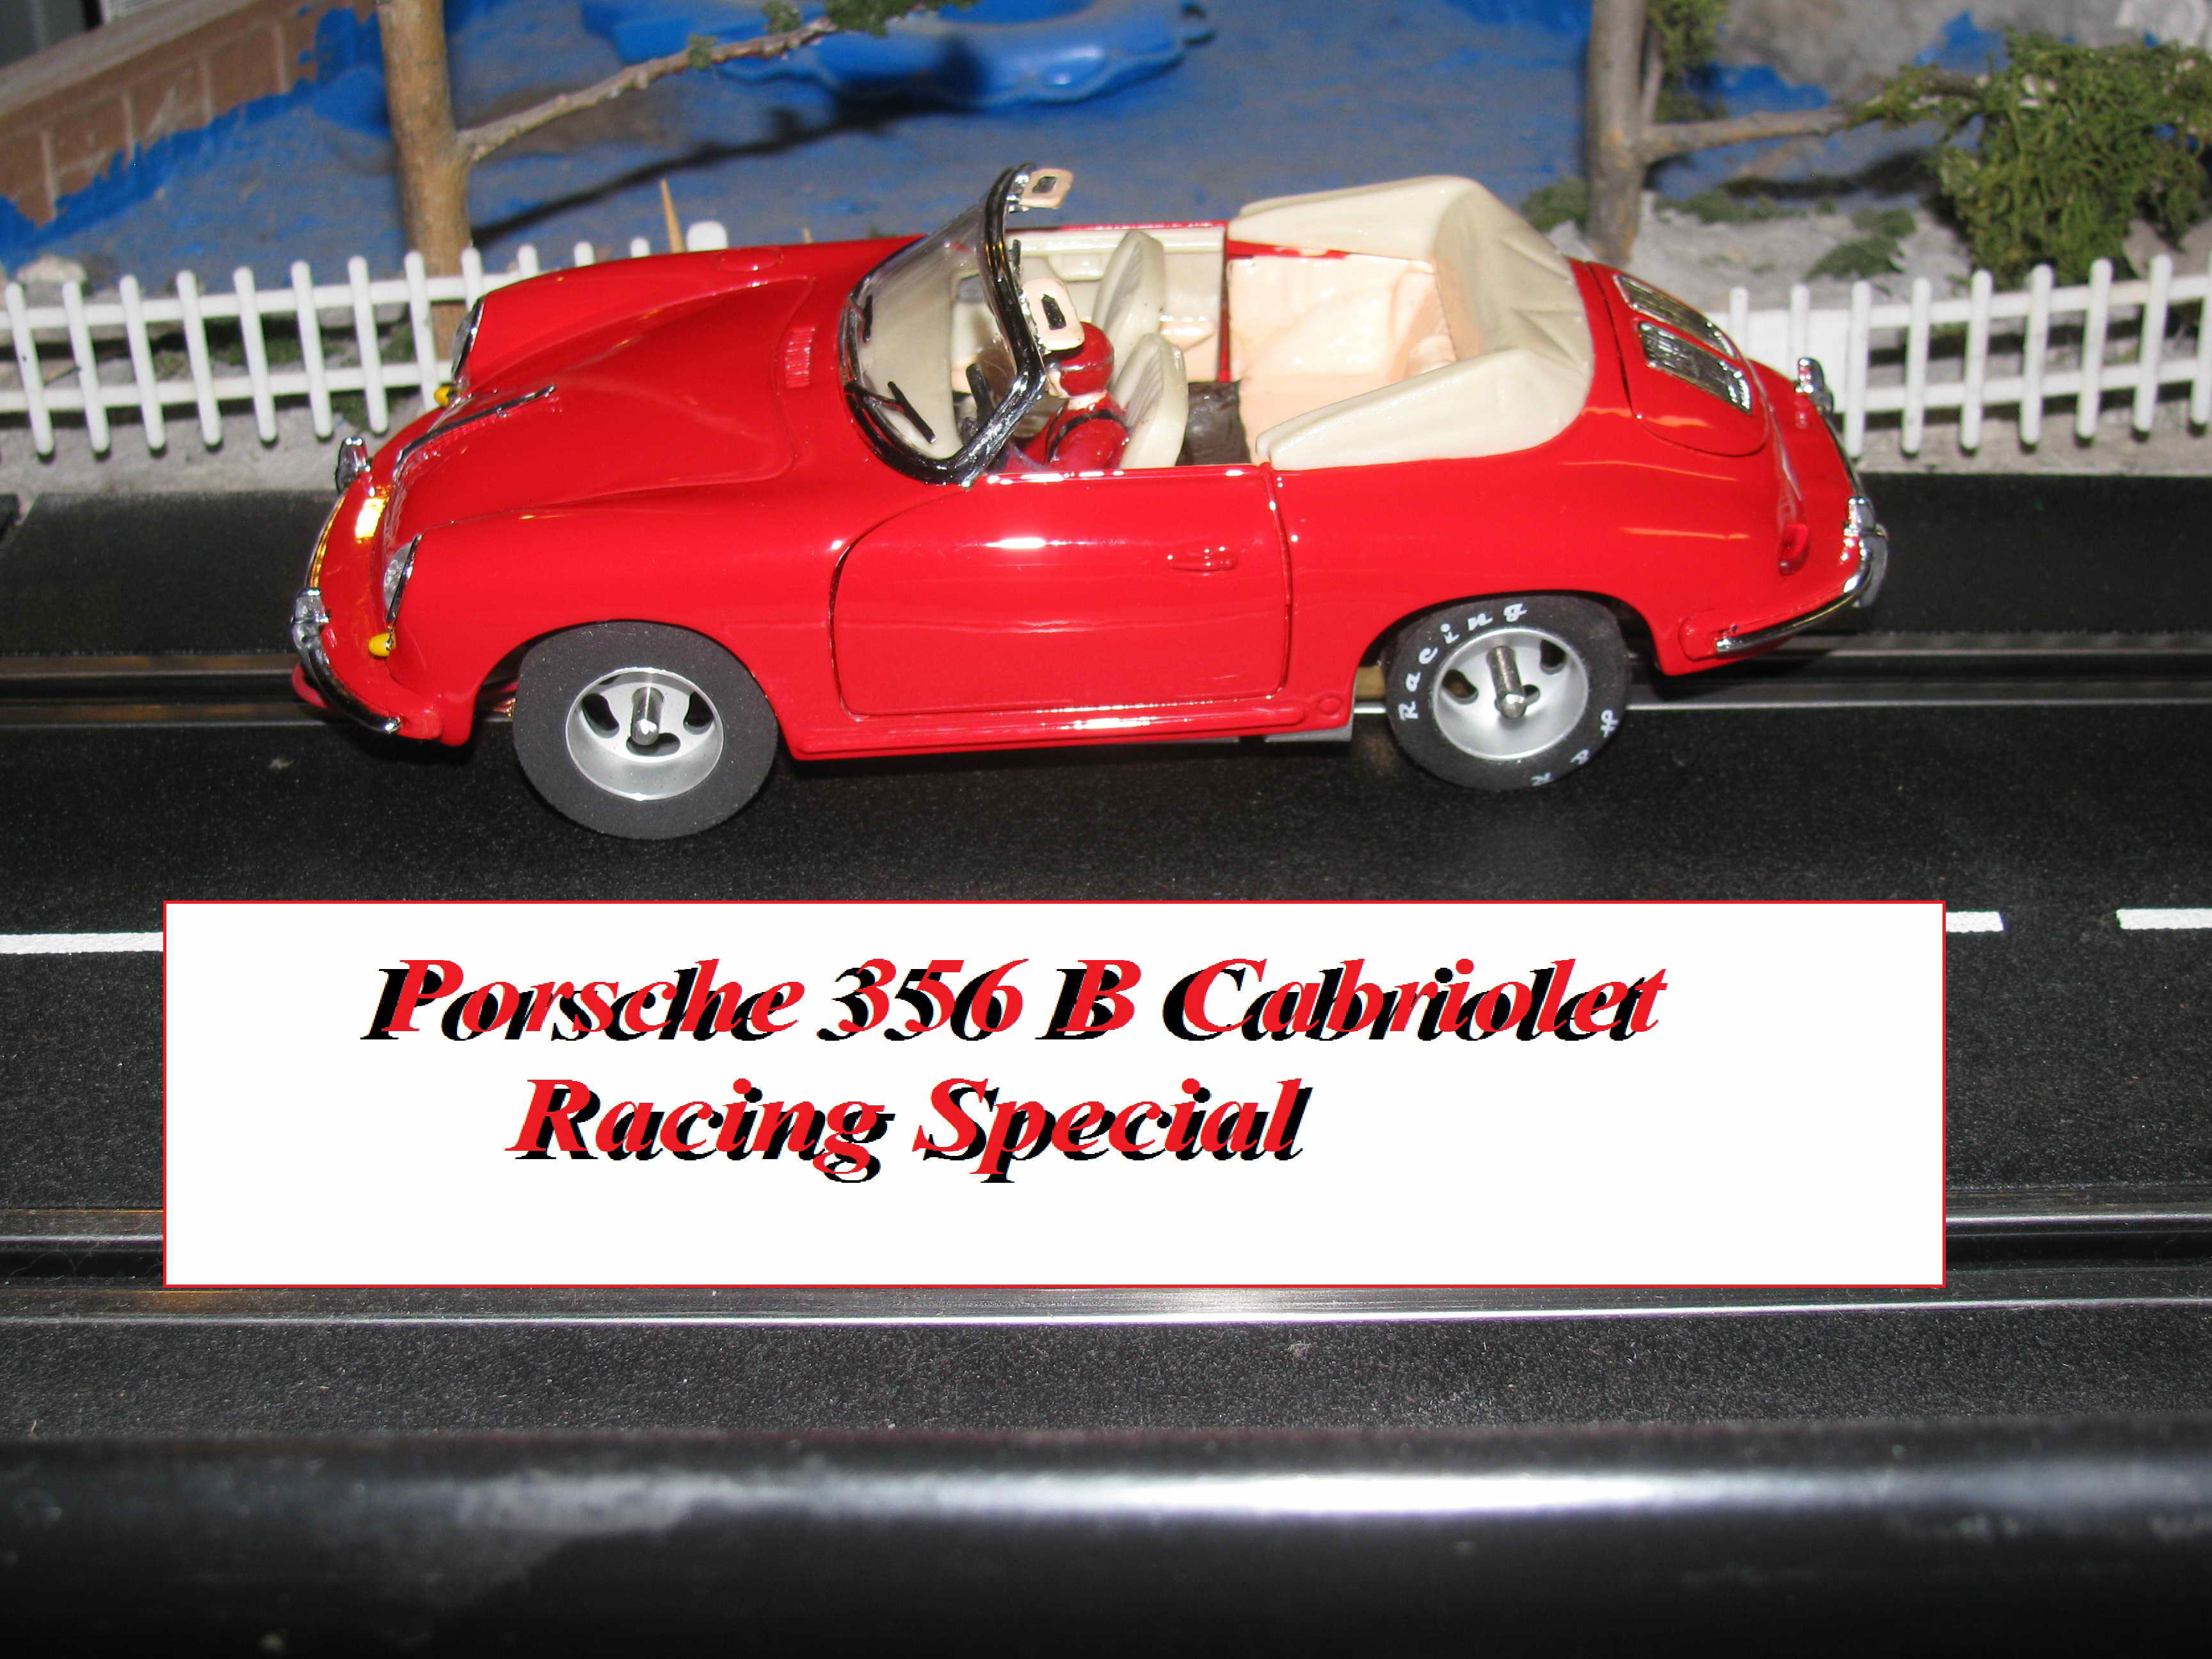 * Winter Super Sale * Porsche 356 B Cabriolet Custom Slot Car Racer with many Modifications 1/24 Scale